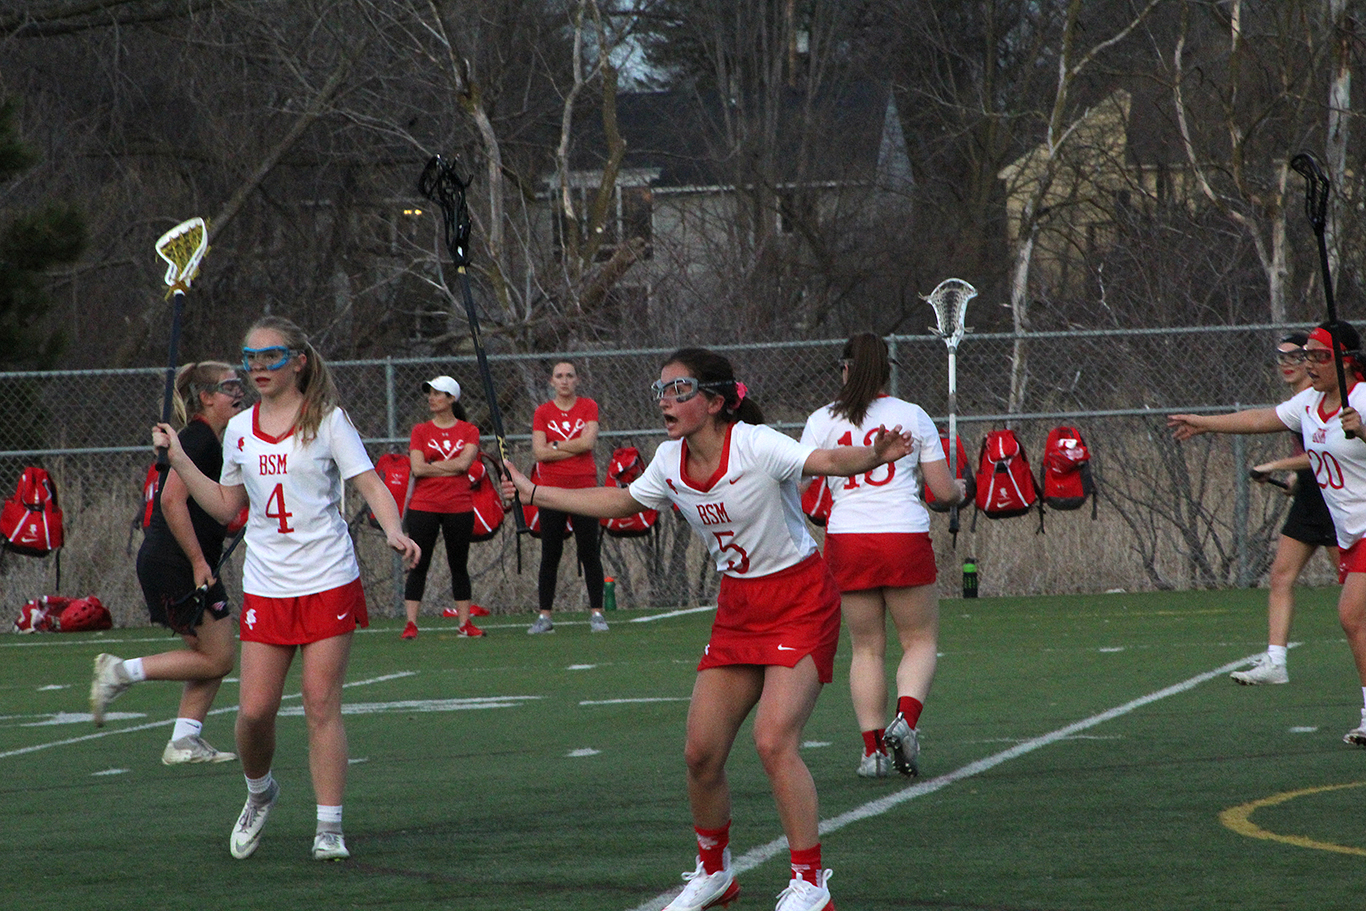 Senior Sally Calengor playing strong defense to help the Re Knights.